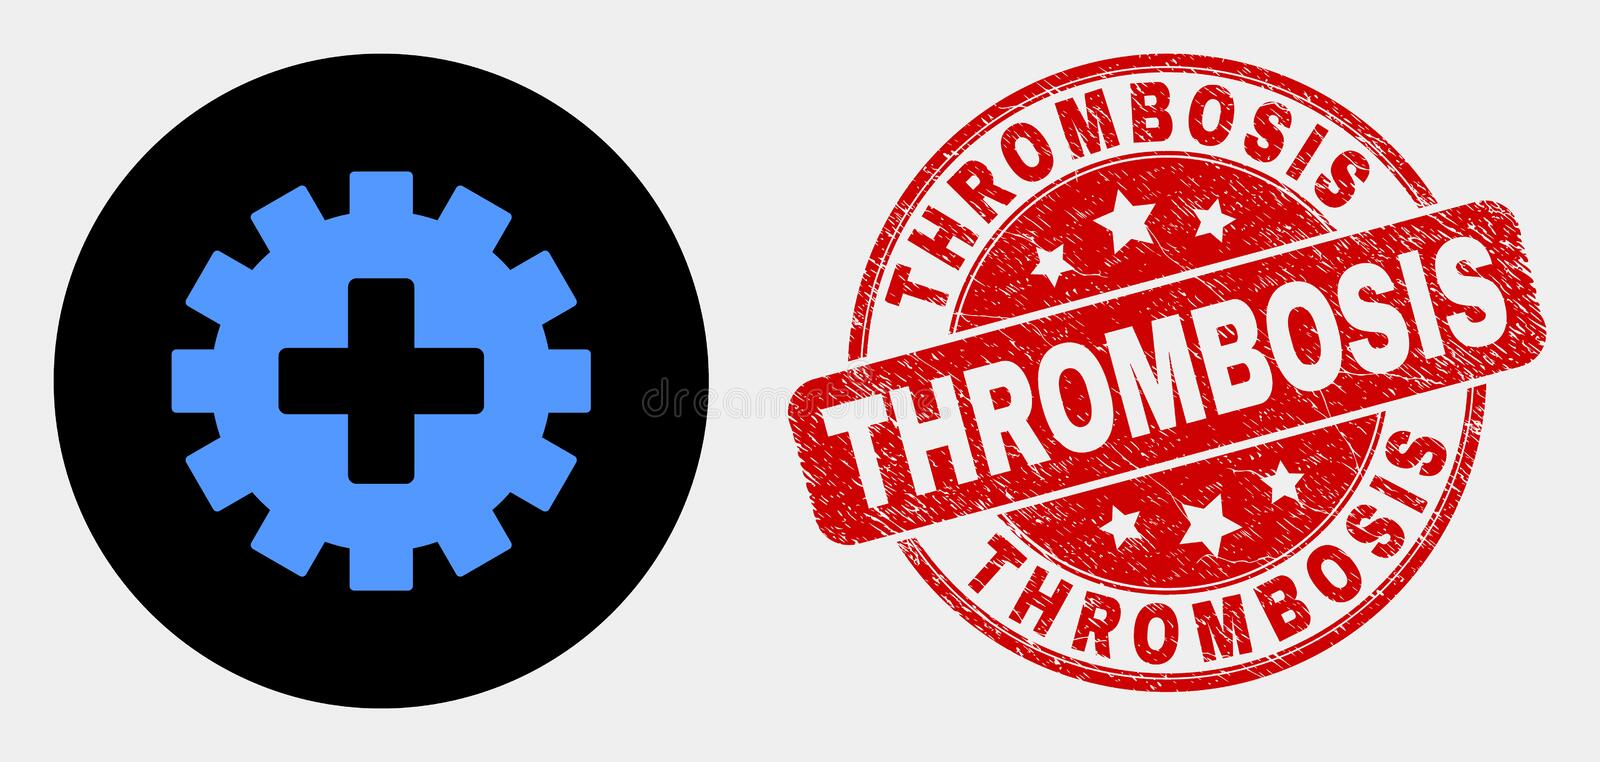 Vector Plus Gear Icon and Grunge Thrombosis Seal. Rounded plus gear icon and Thrombosis stamp. Red rounded textured stamp with Thrombosis caption. Blue plus gear stock illustration